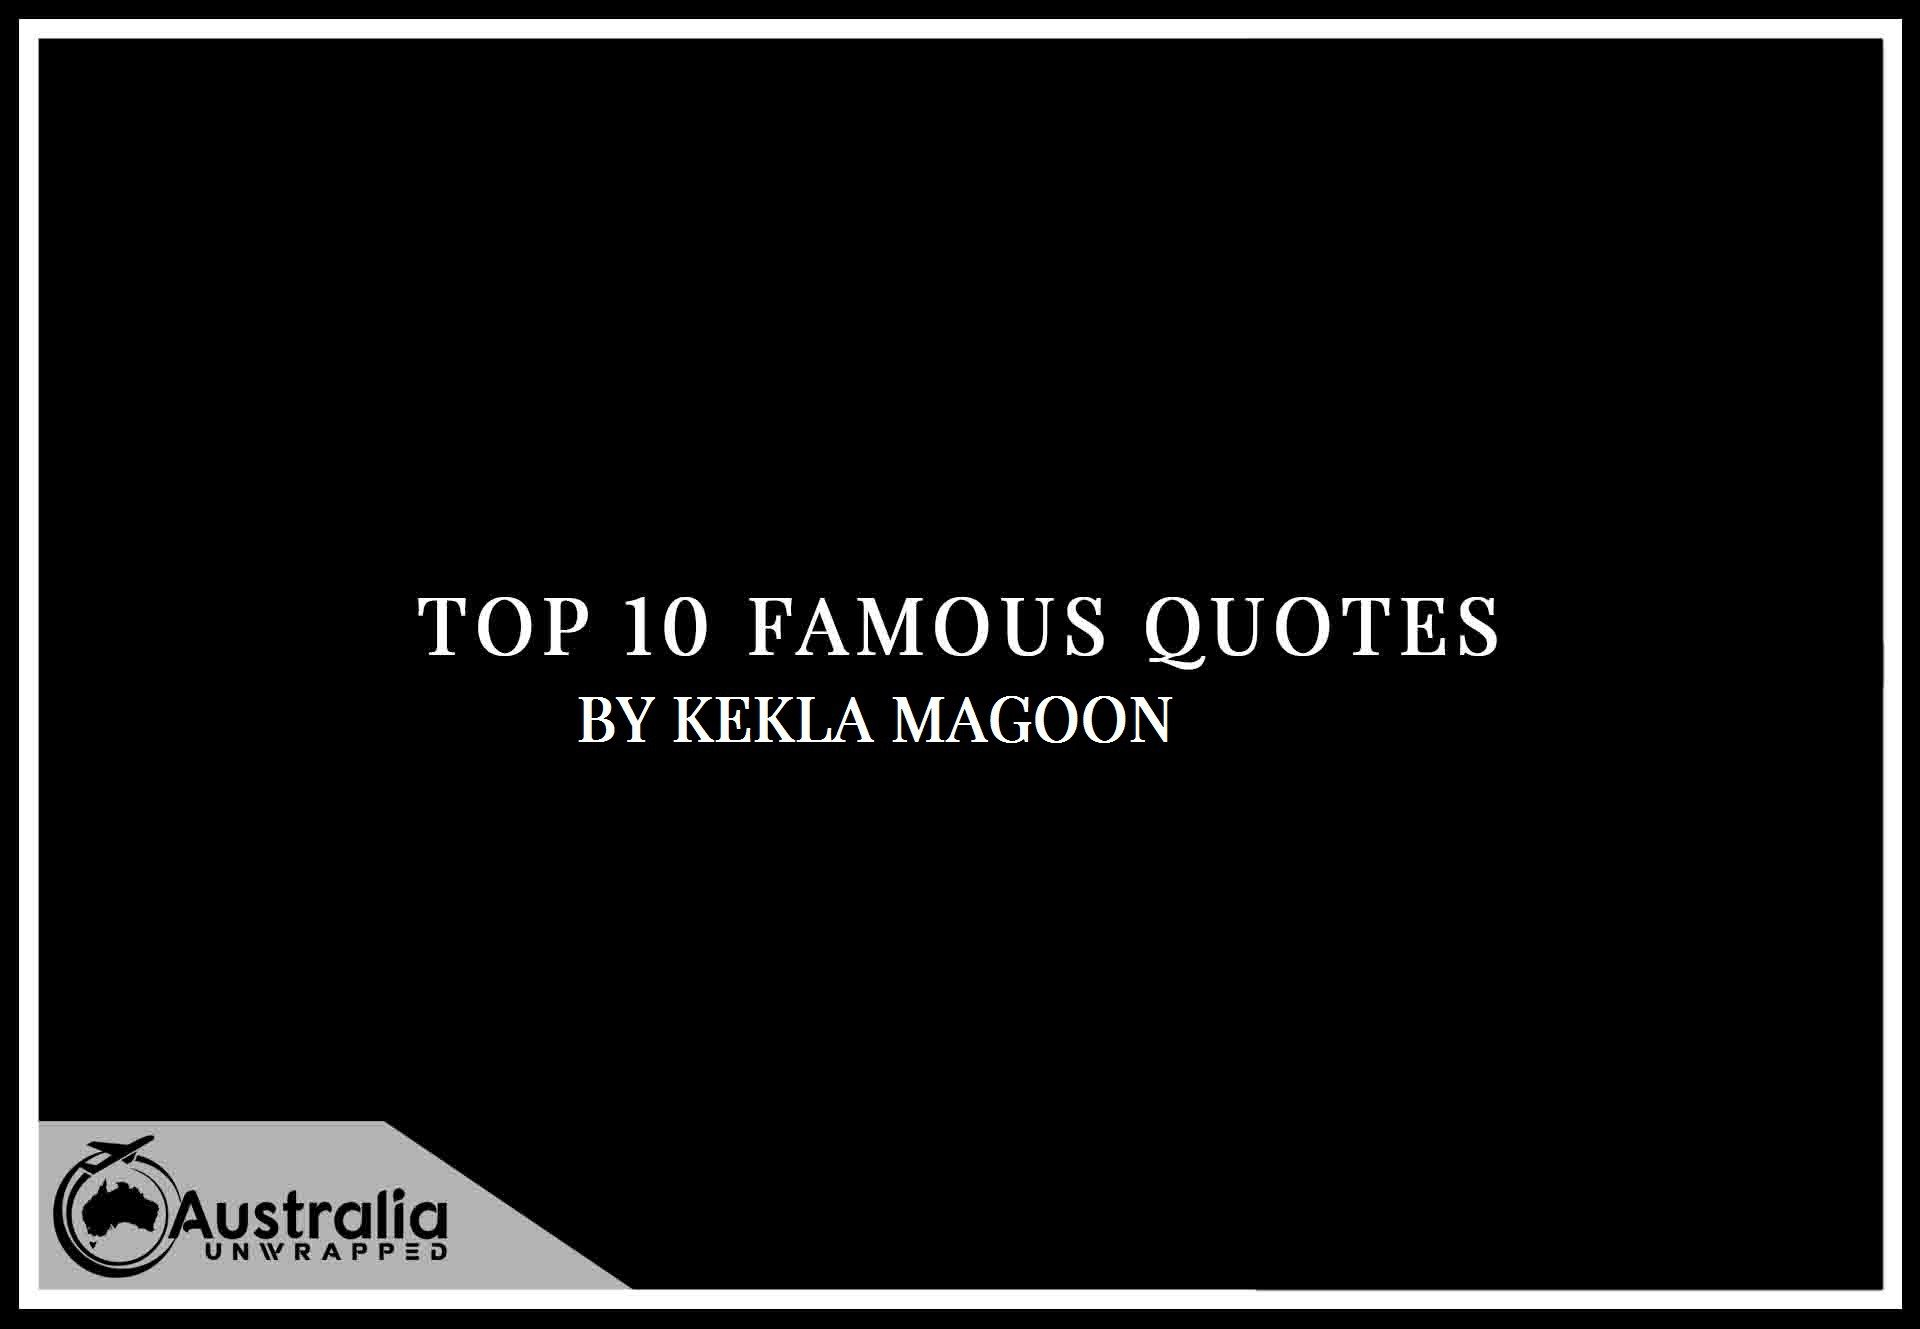 Kekla Magoon's Top 10 Popular and Famous Quotes